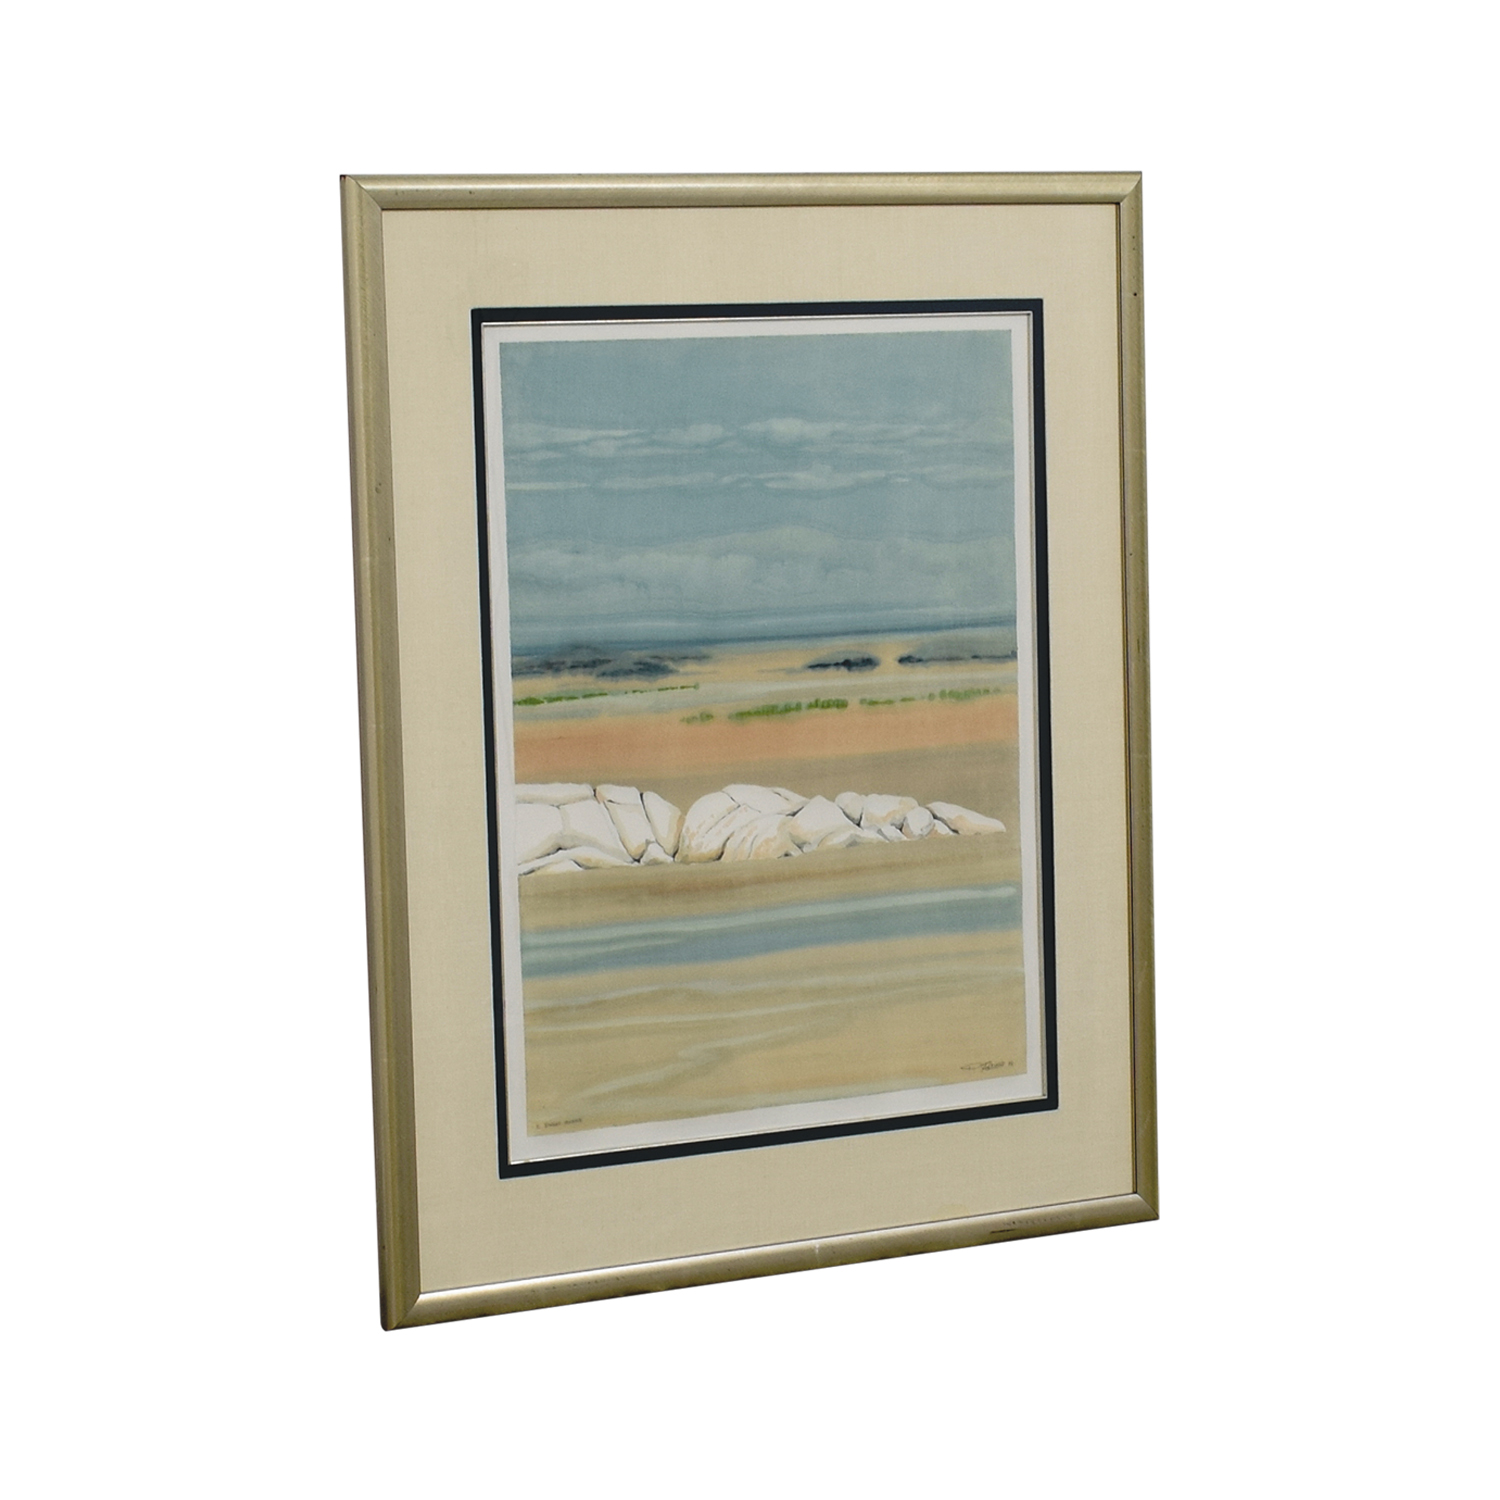 Framed Doug Forsythe Intaglio Monotypes sale